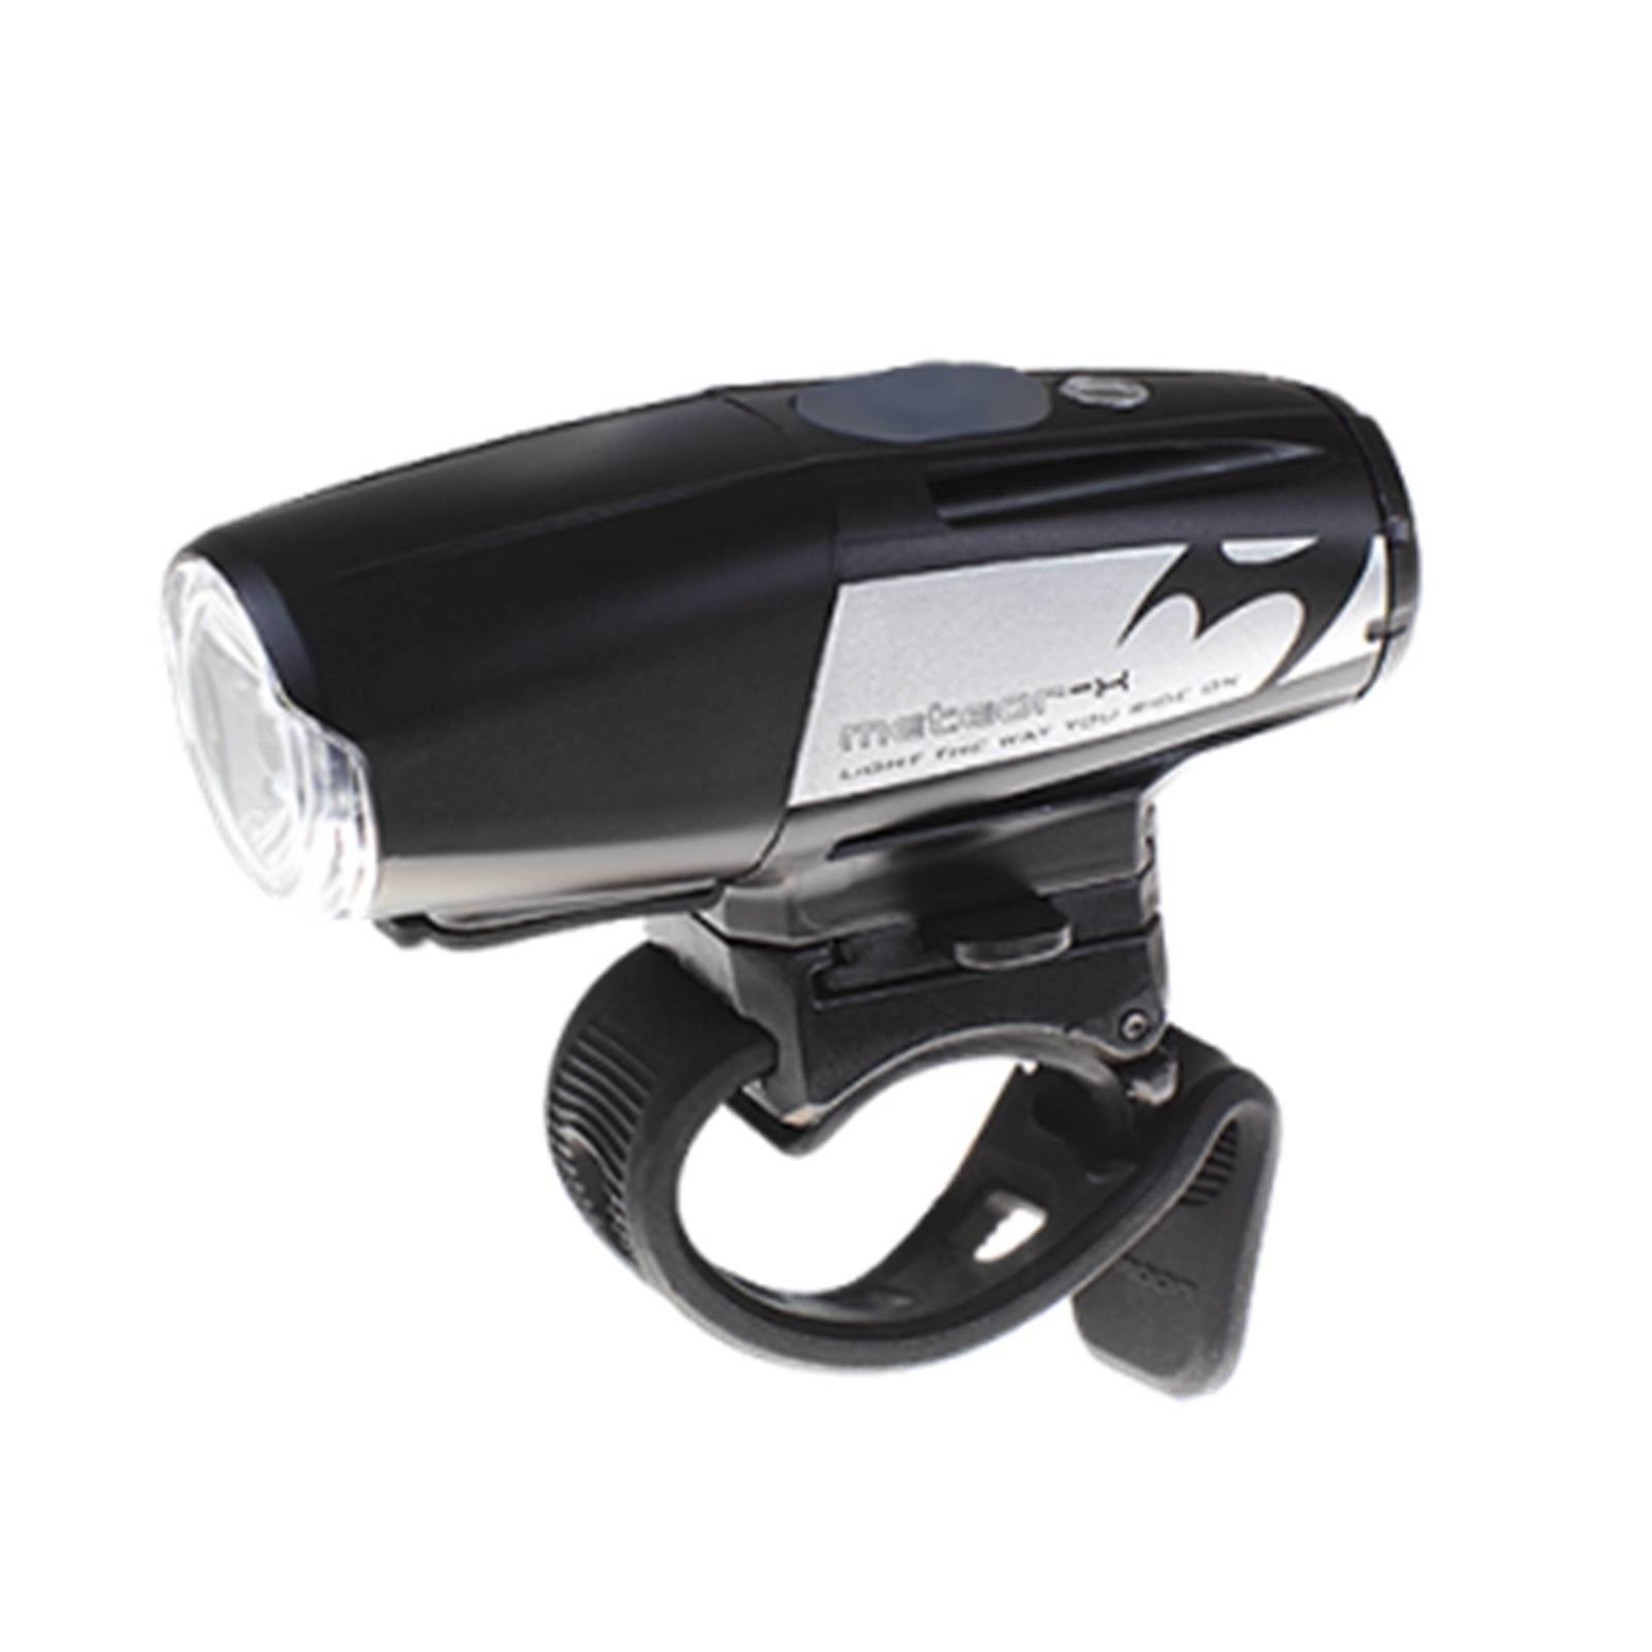 Moon Meteor-X Auto 320/450Lm Front Light